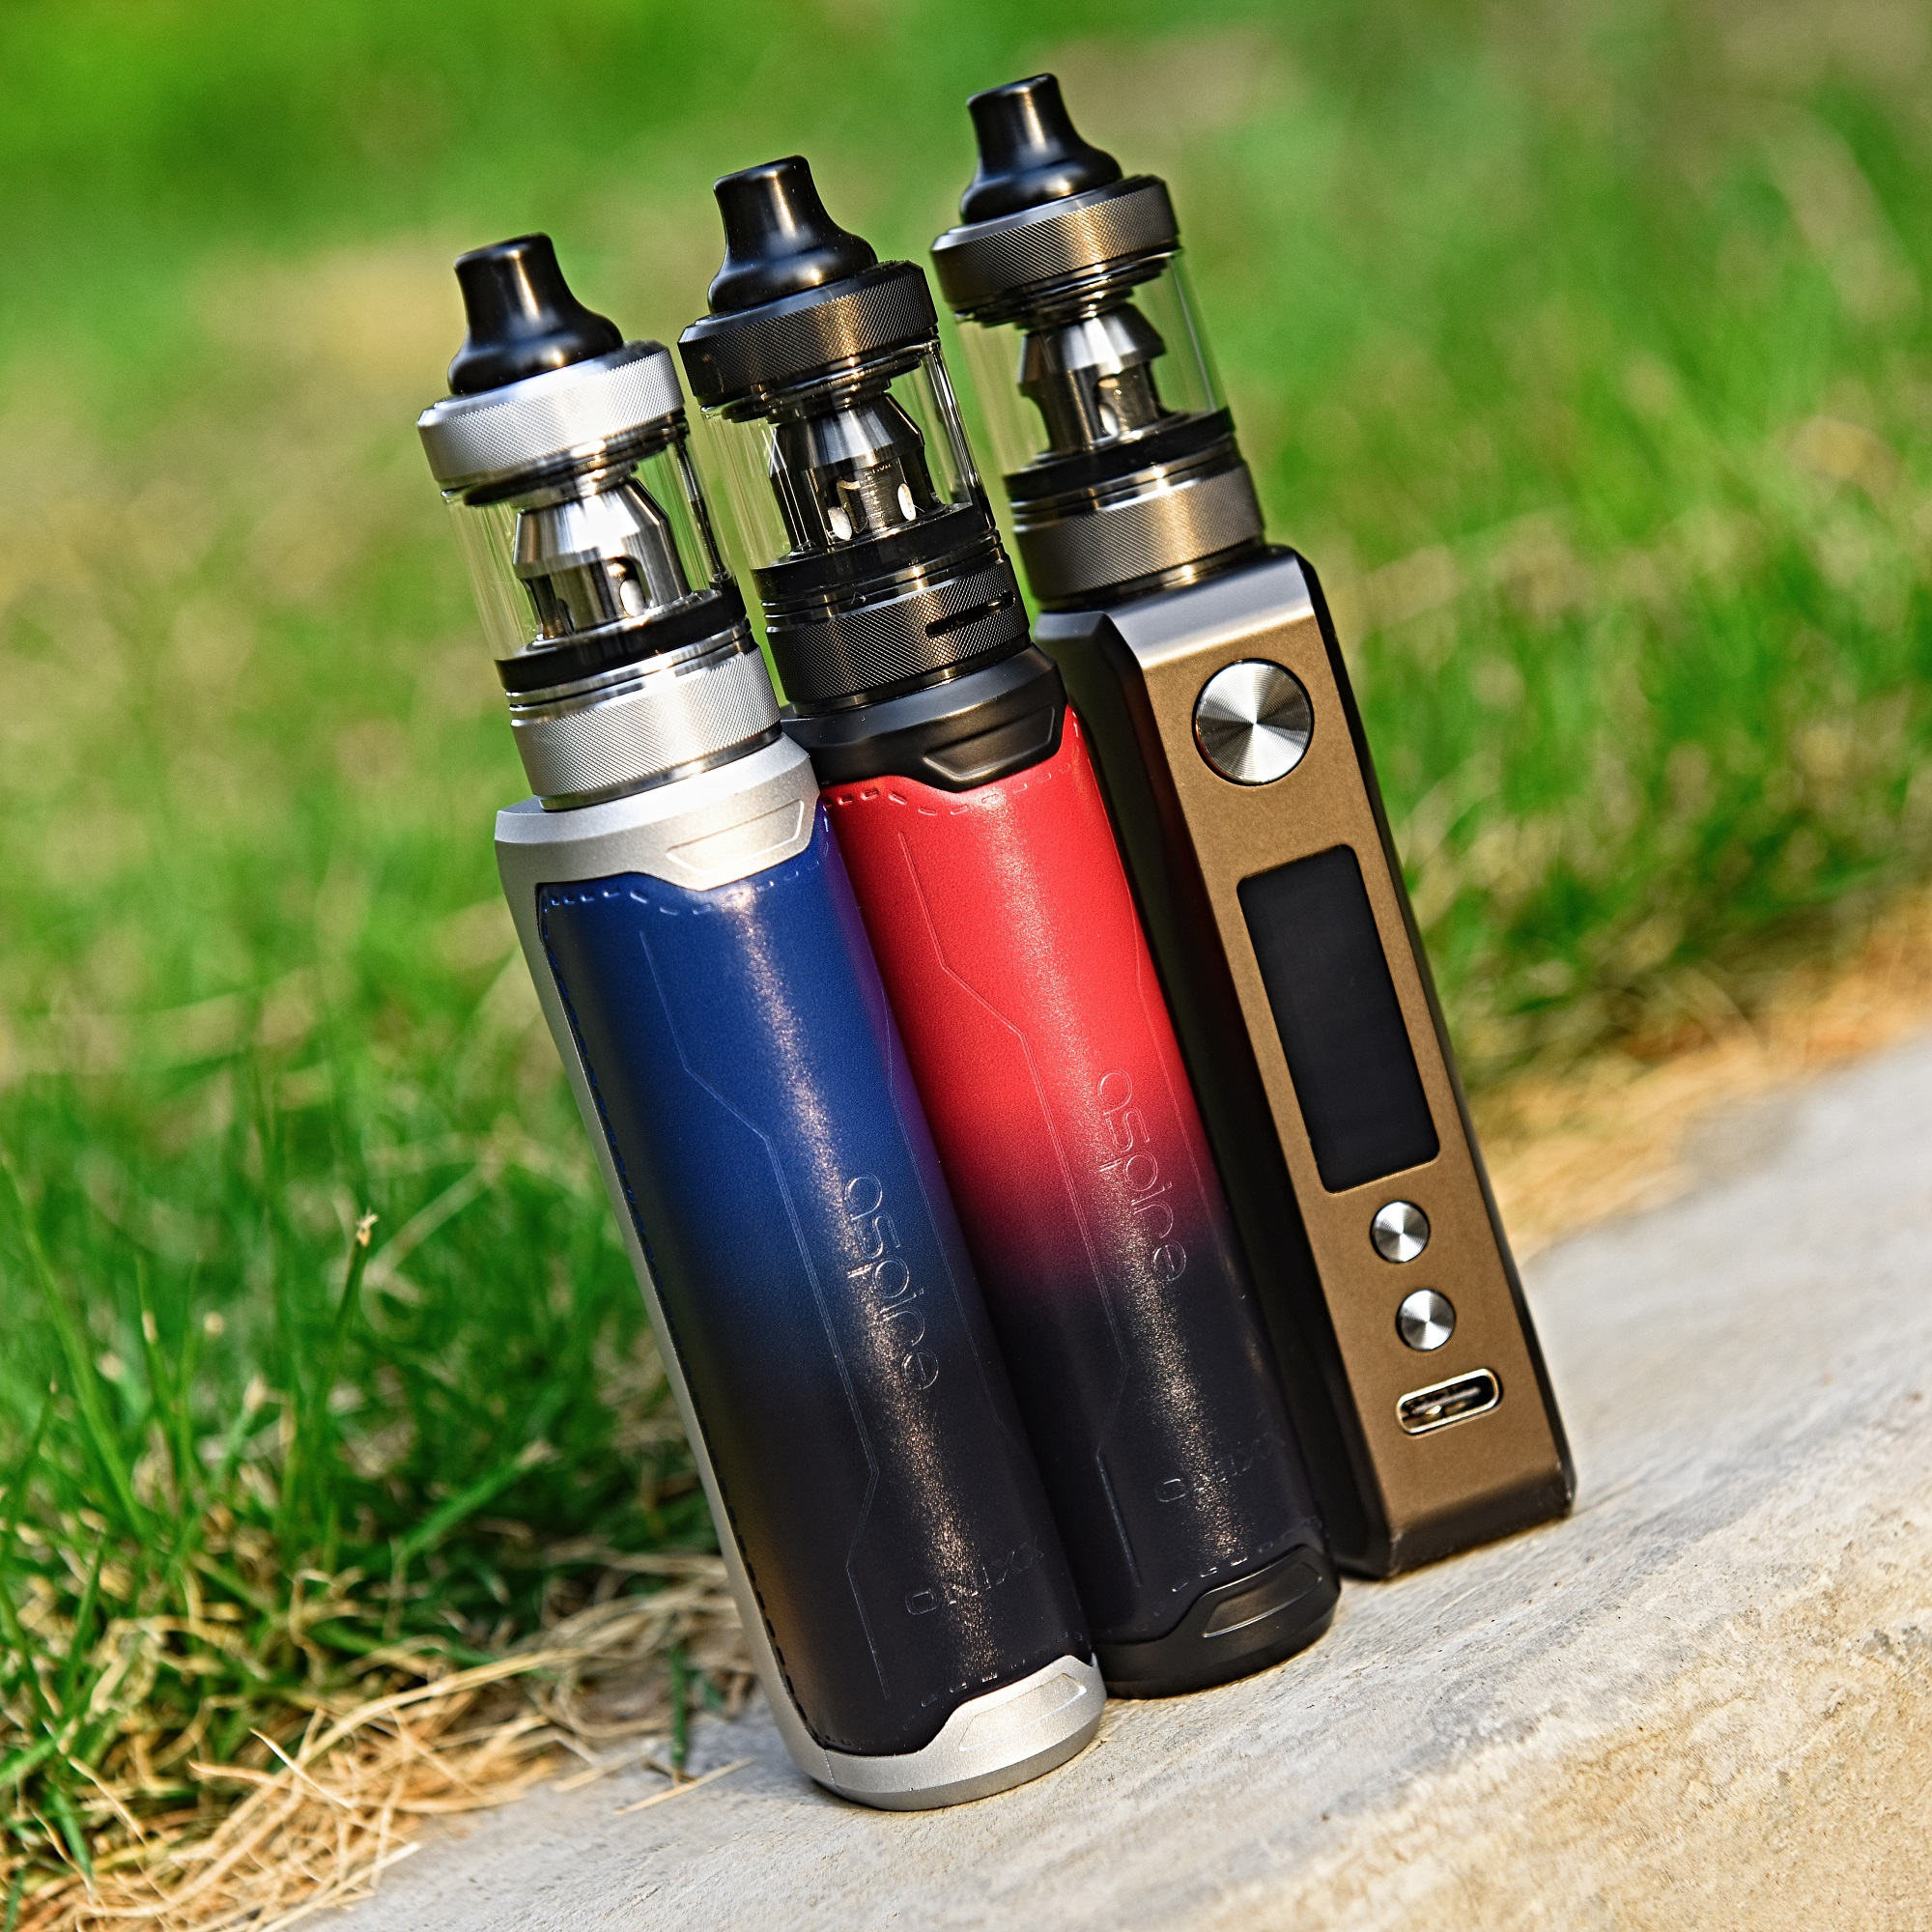 Aspire Onnix in three color versions.